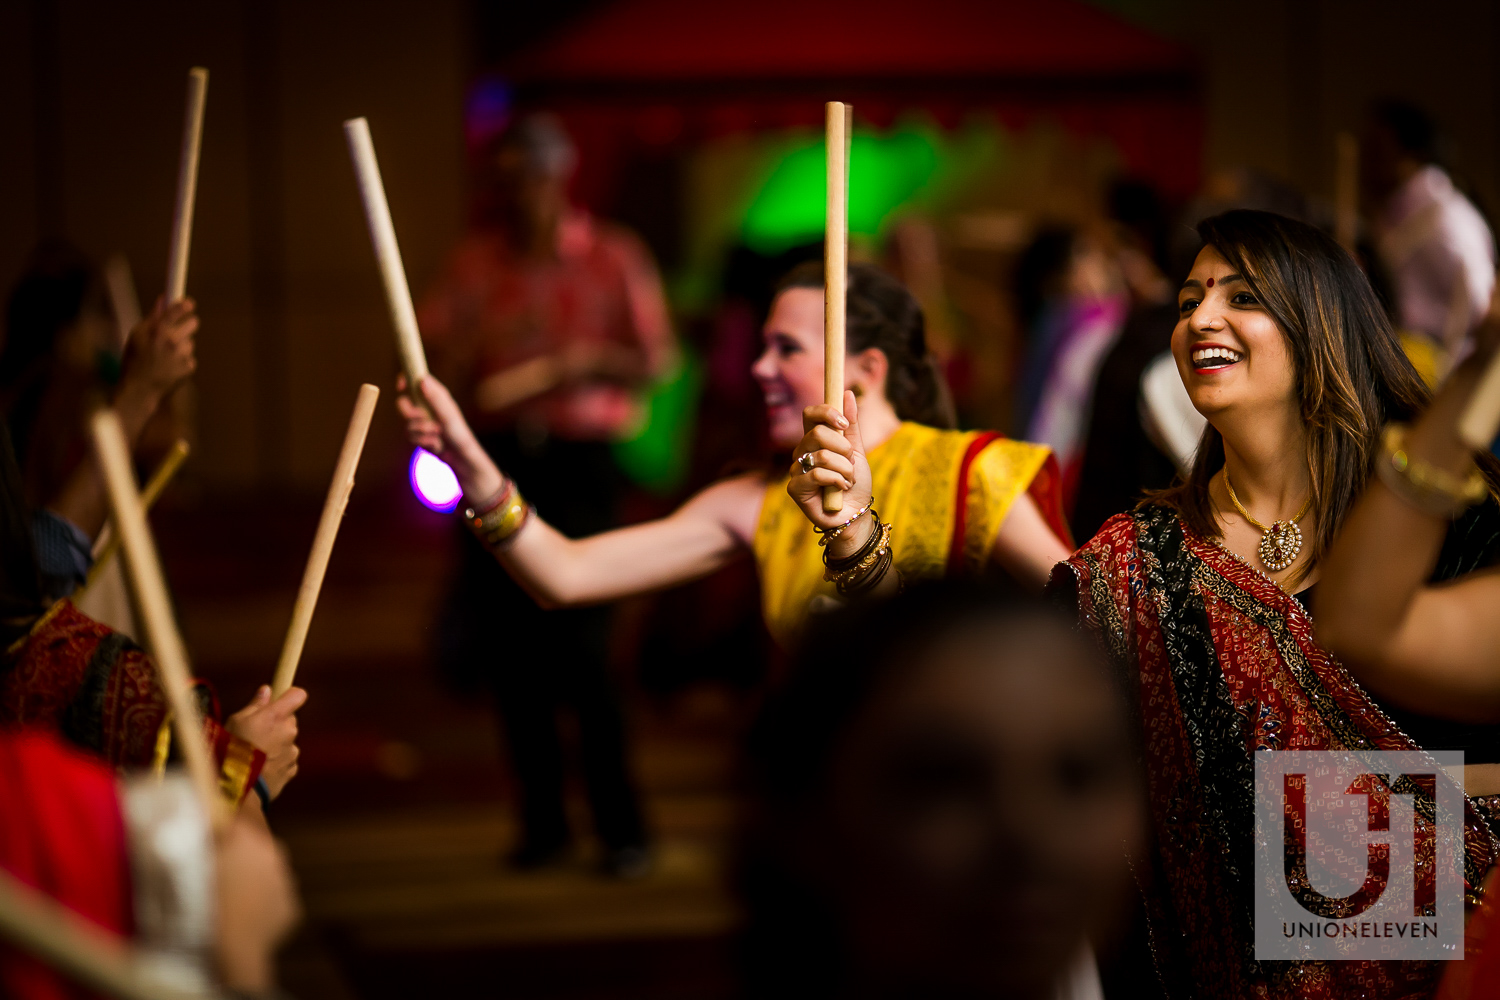 Raas dance at the westin hotel